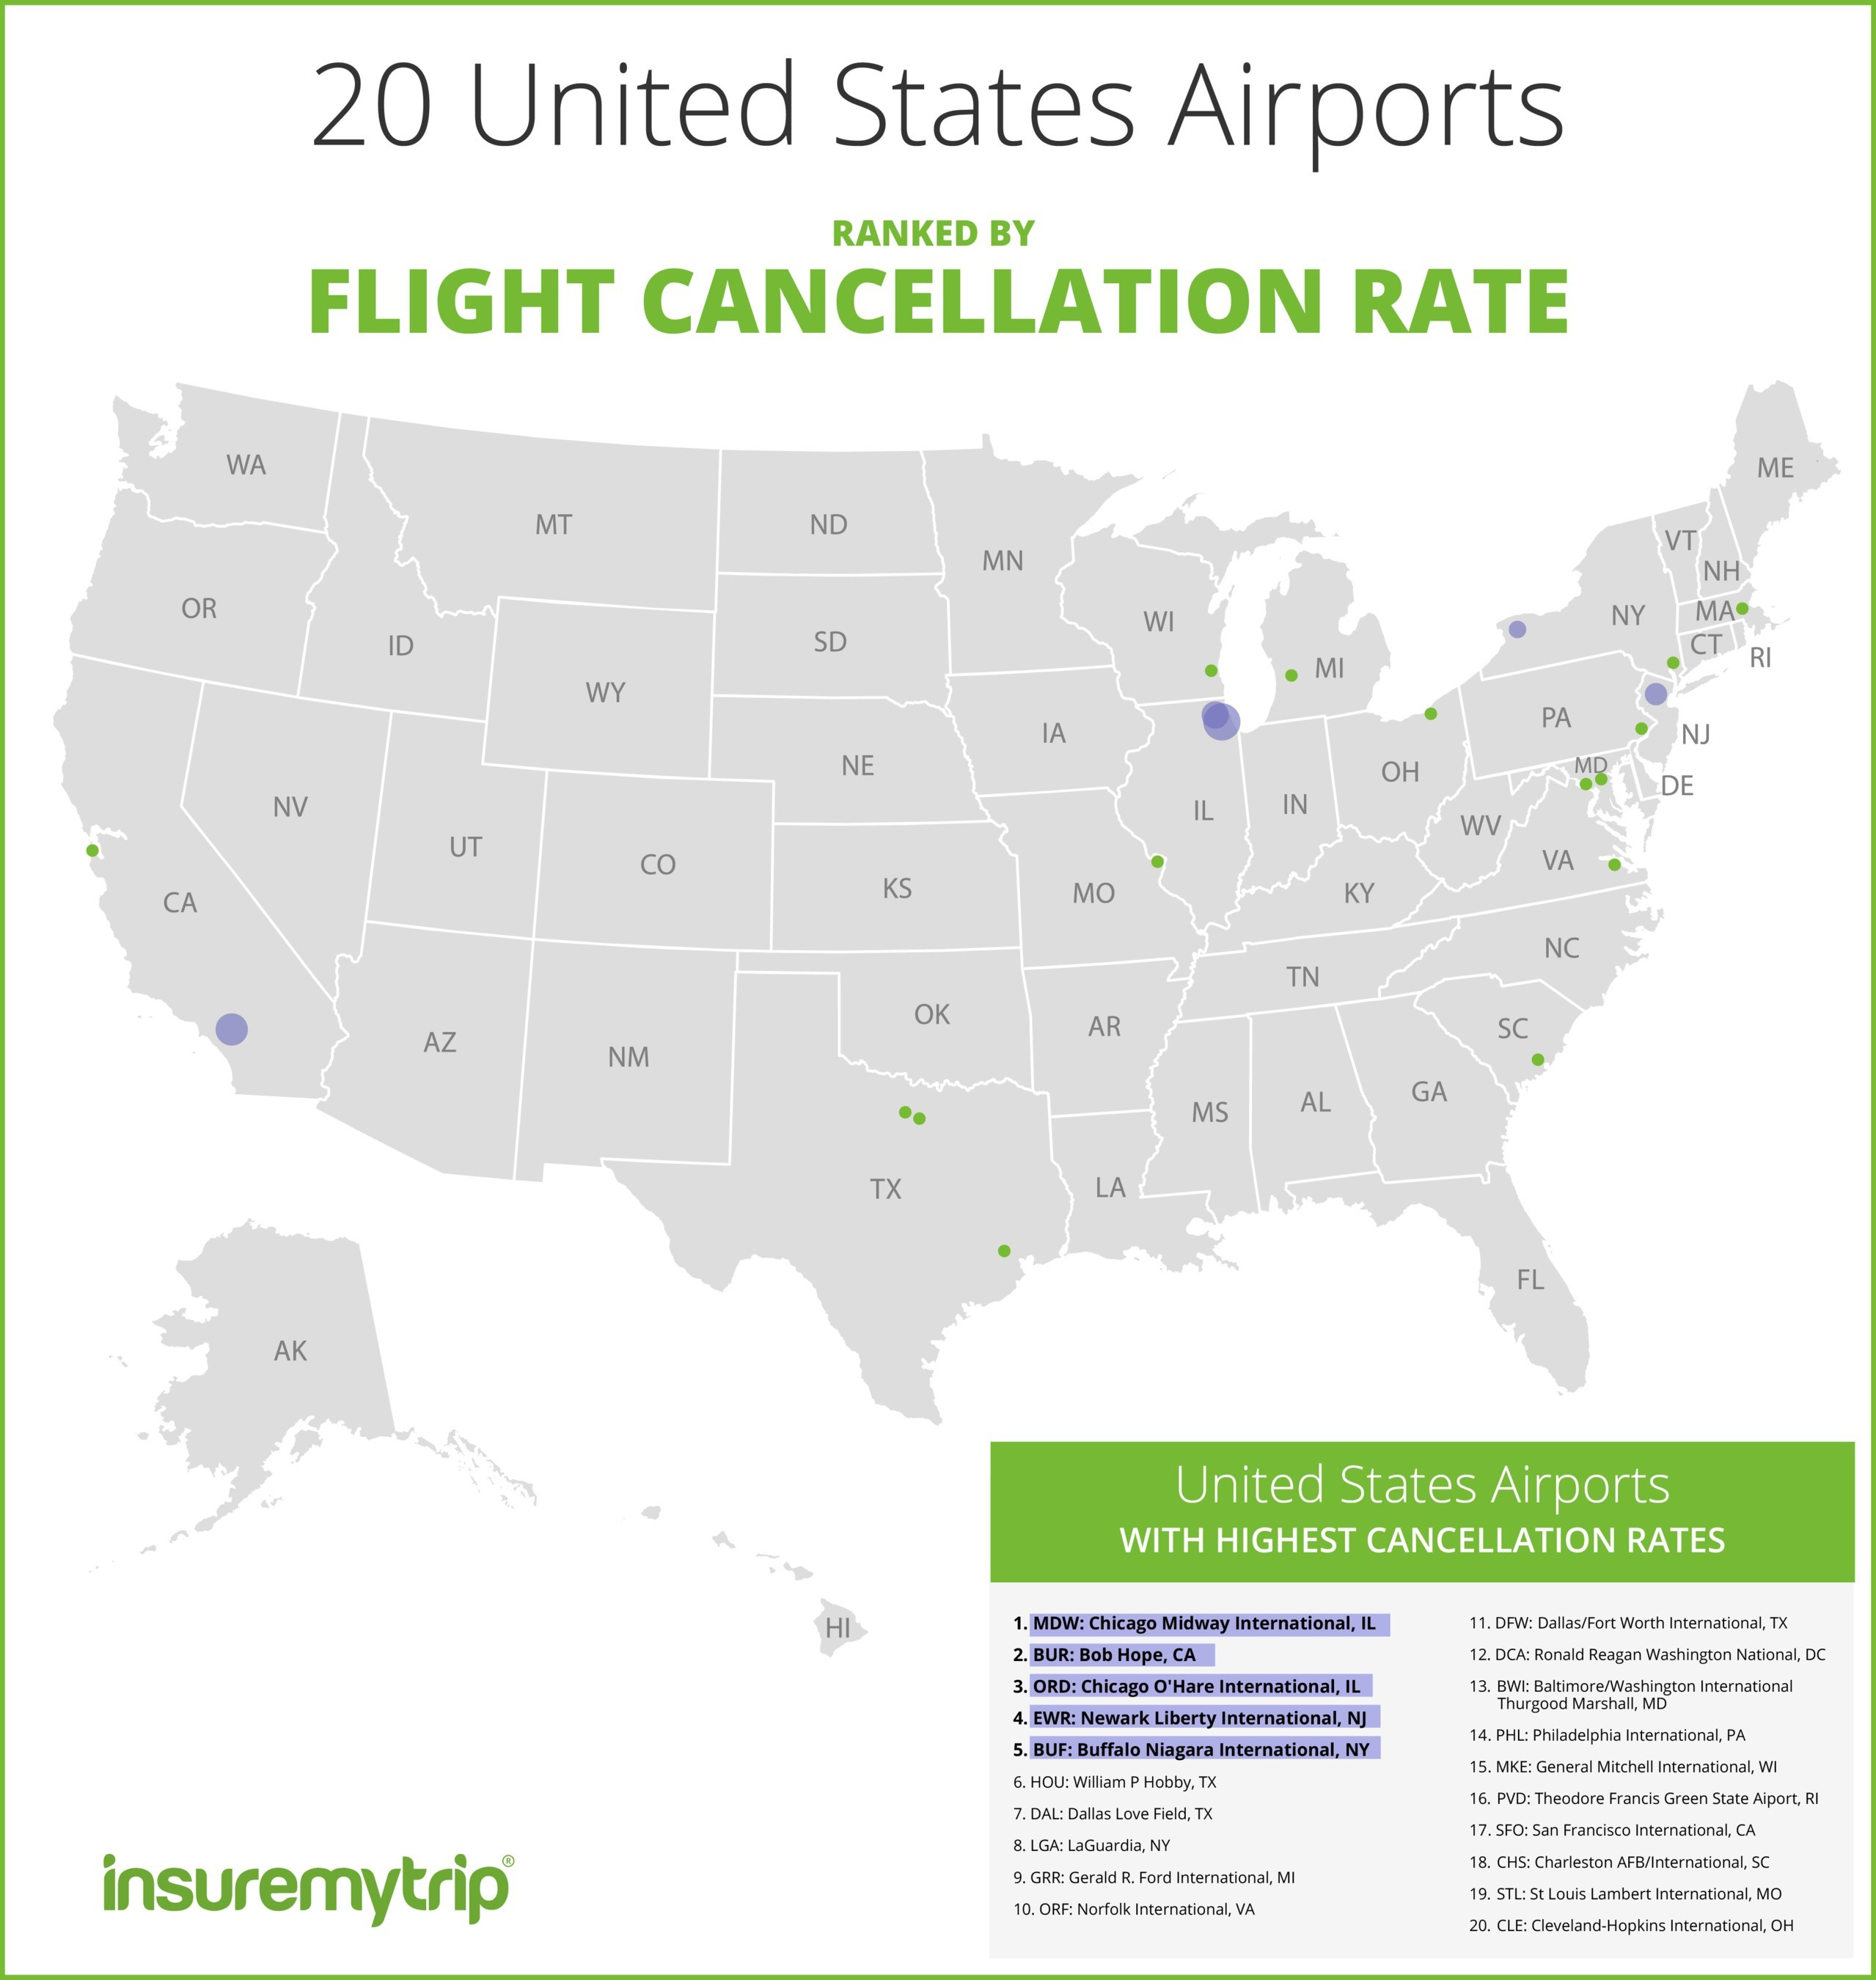 20 US Airports Ranked by Cancellation Rates for 2019